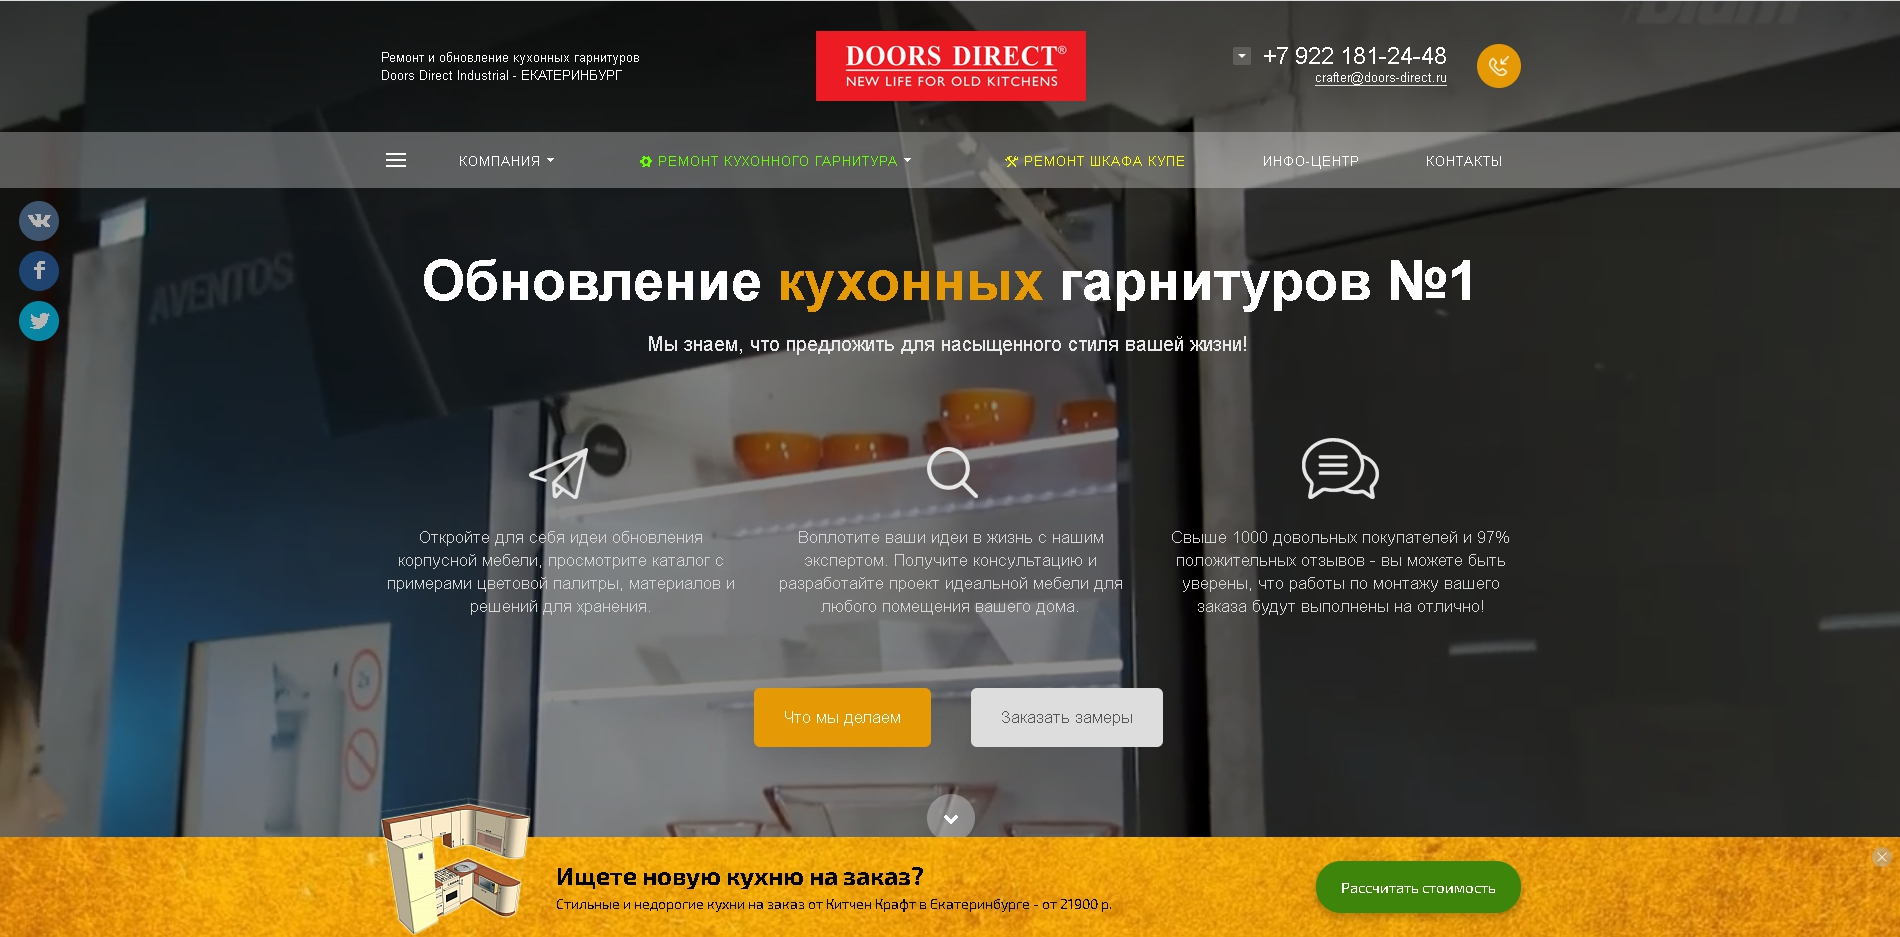 DoorsDirect